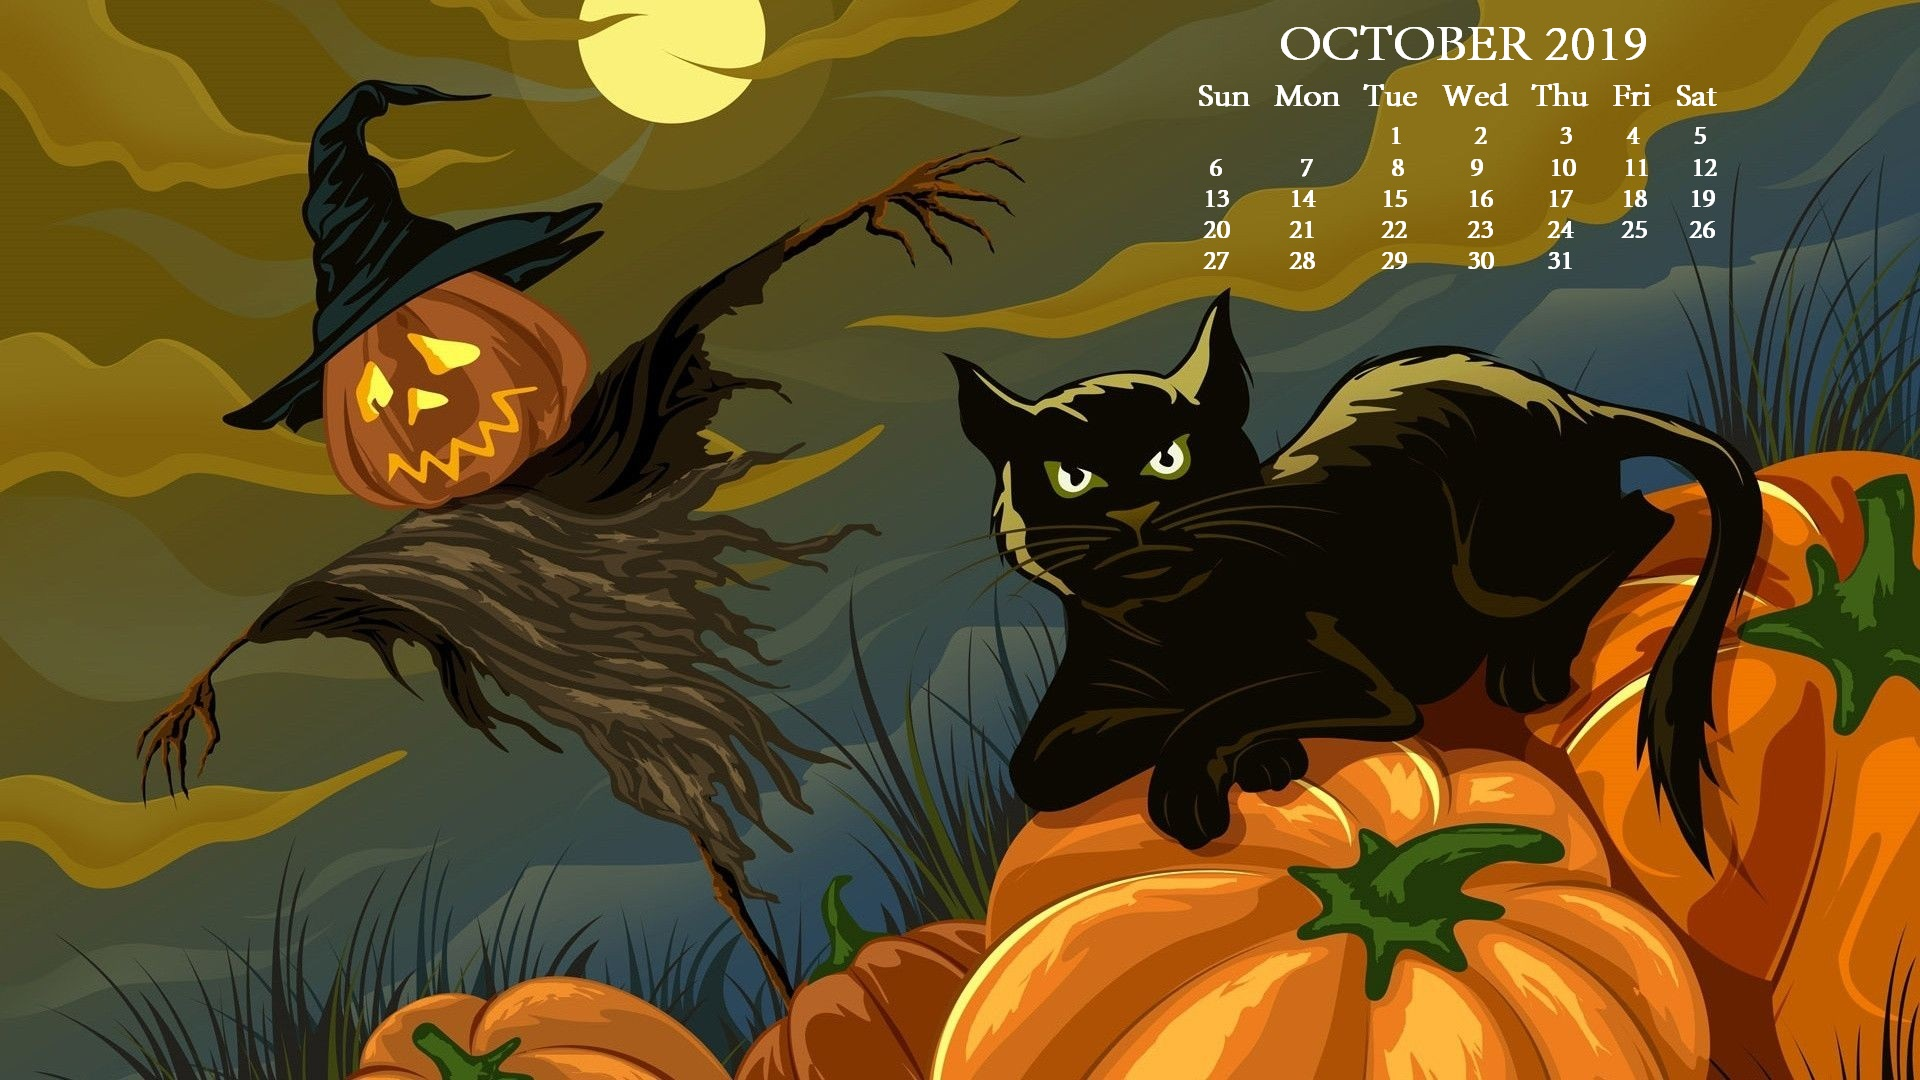 October 2019 HD Calendar Wallpaper